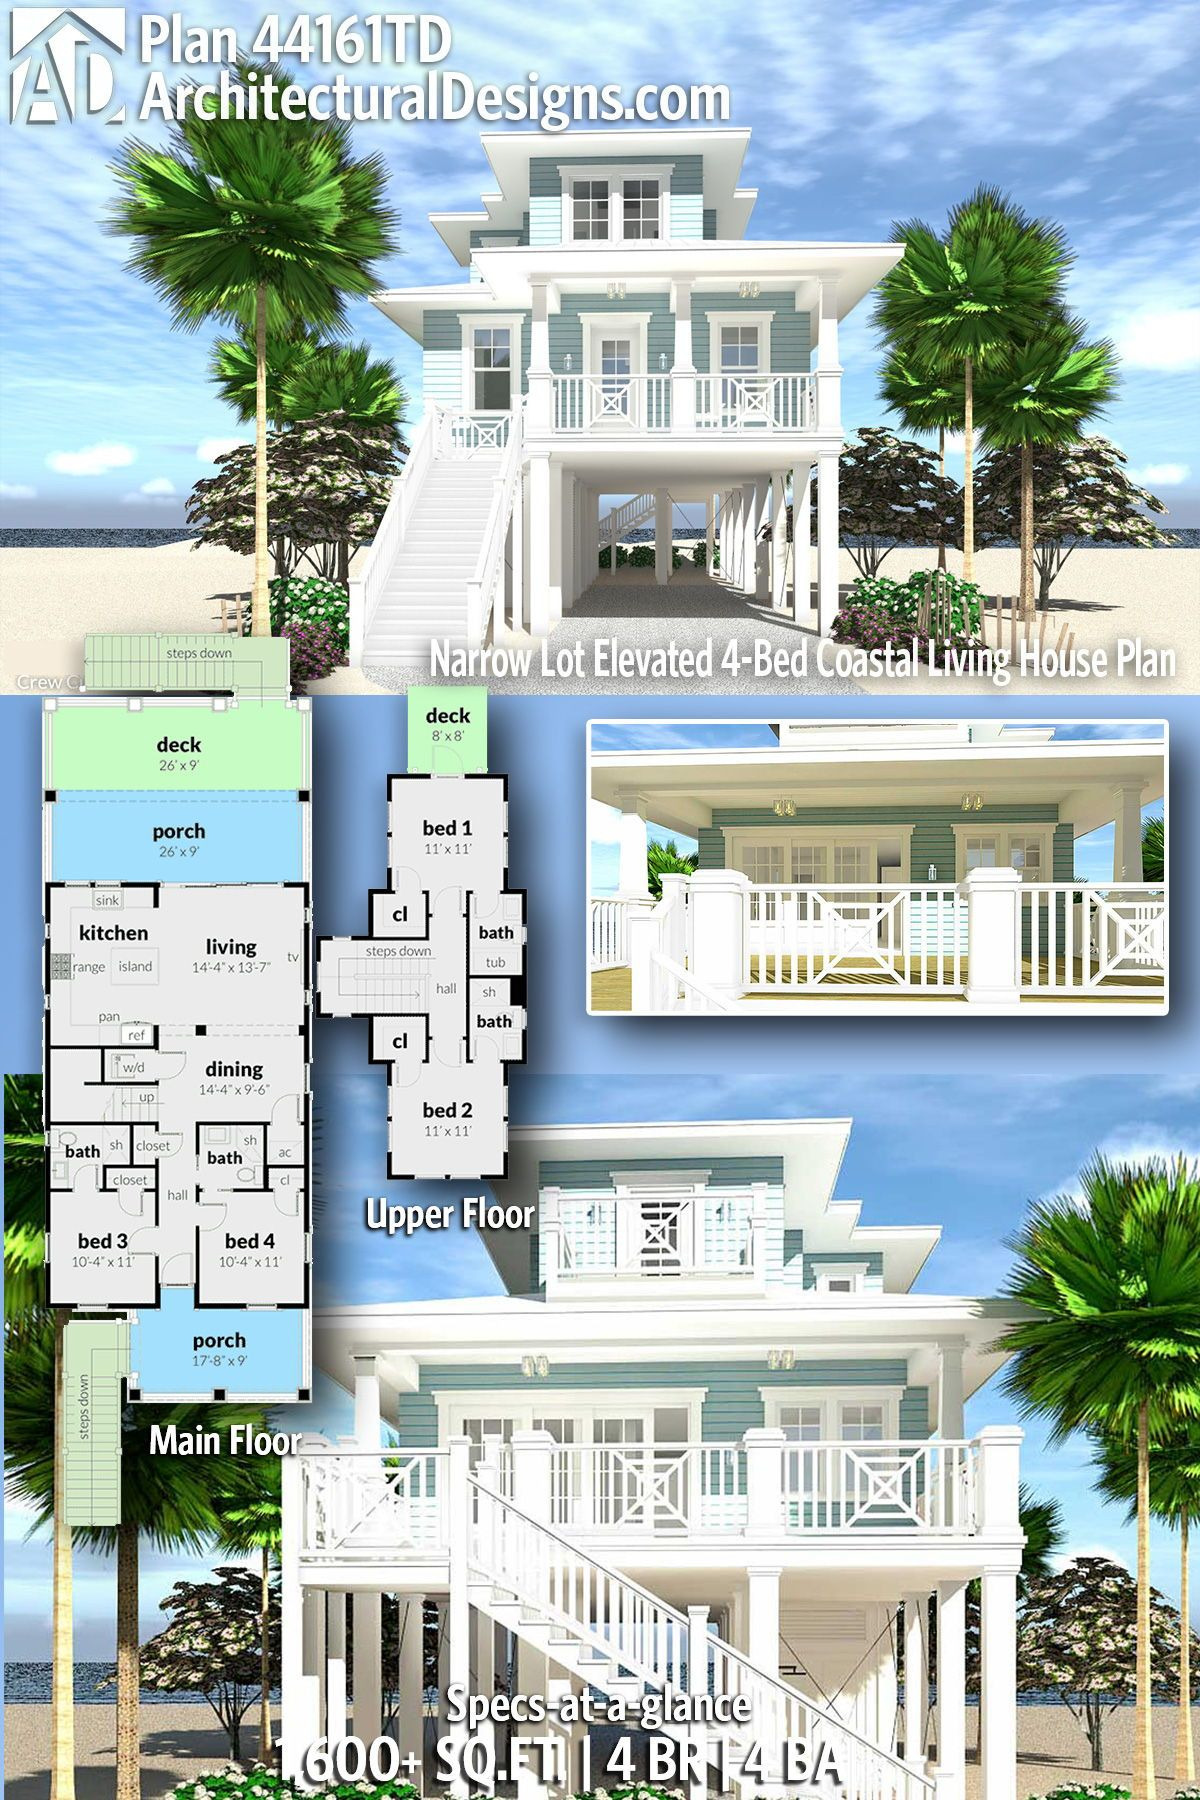 House Plans On Piers Elegant Plan Td Narrow Lot Elevated 4 Bed Coastal Living House